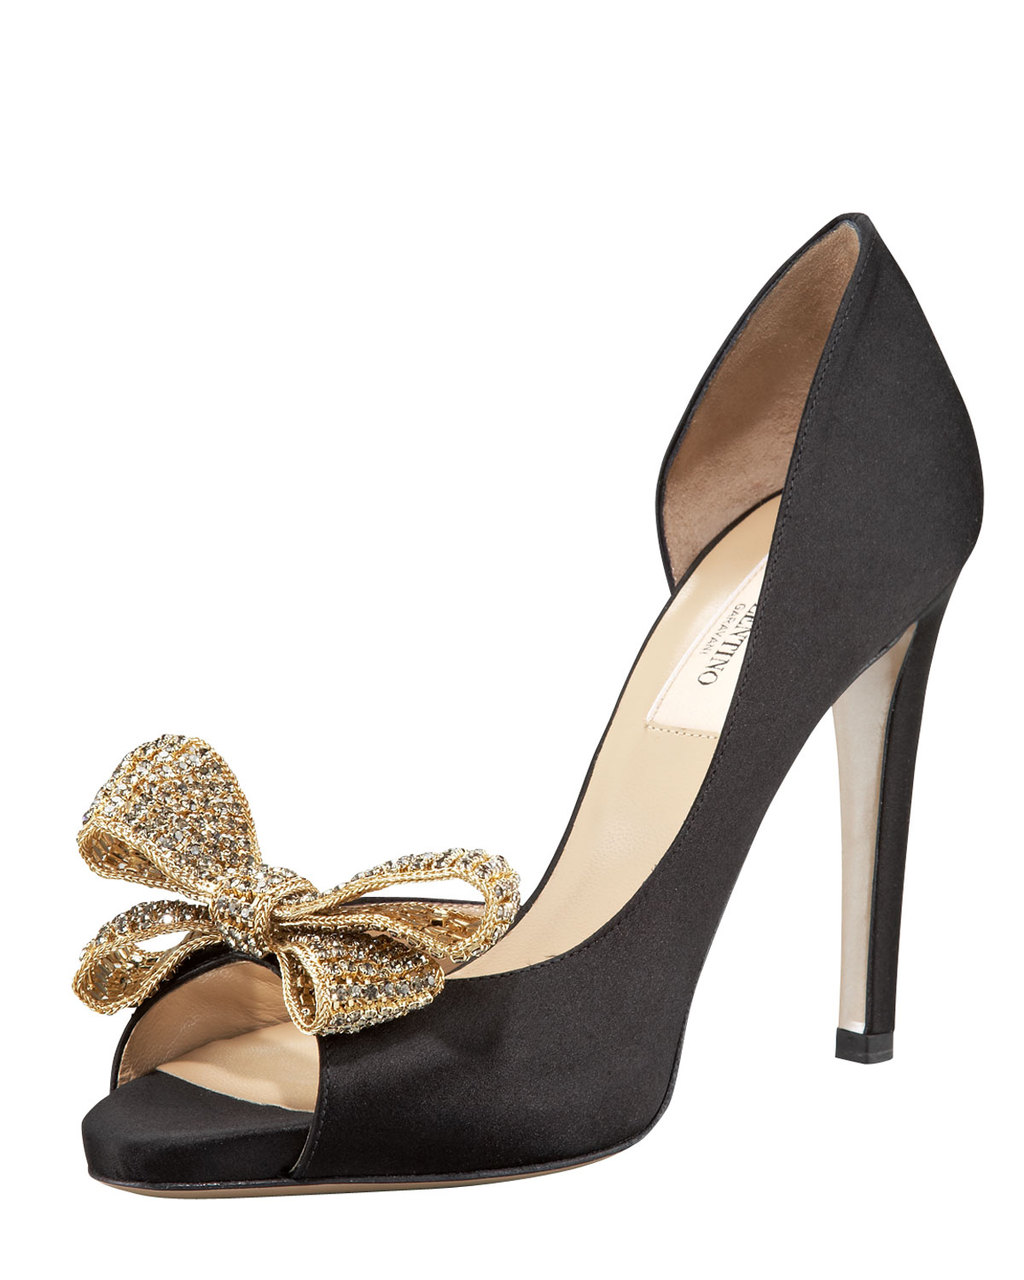 Timeless Valentino Couture Jewelry Bow d'Orsay Pumps